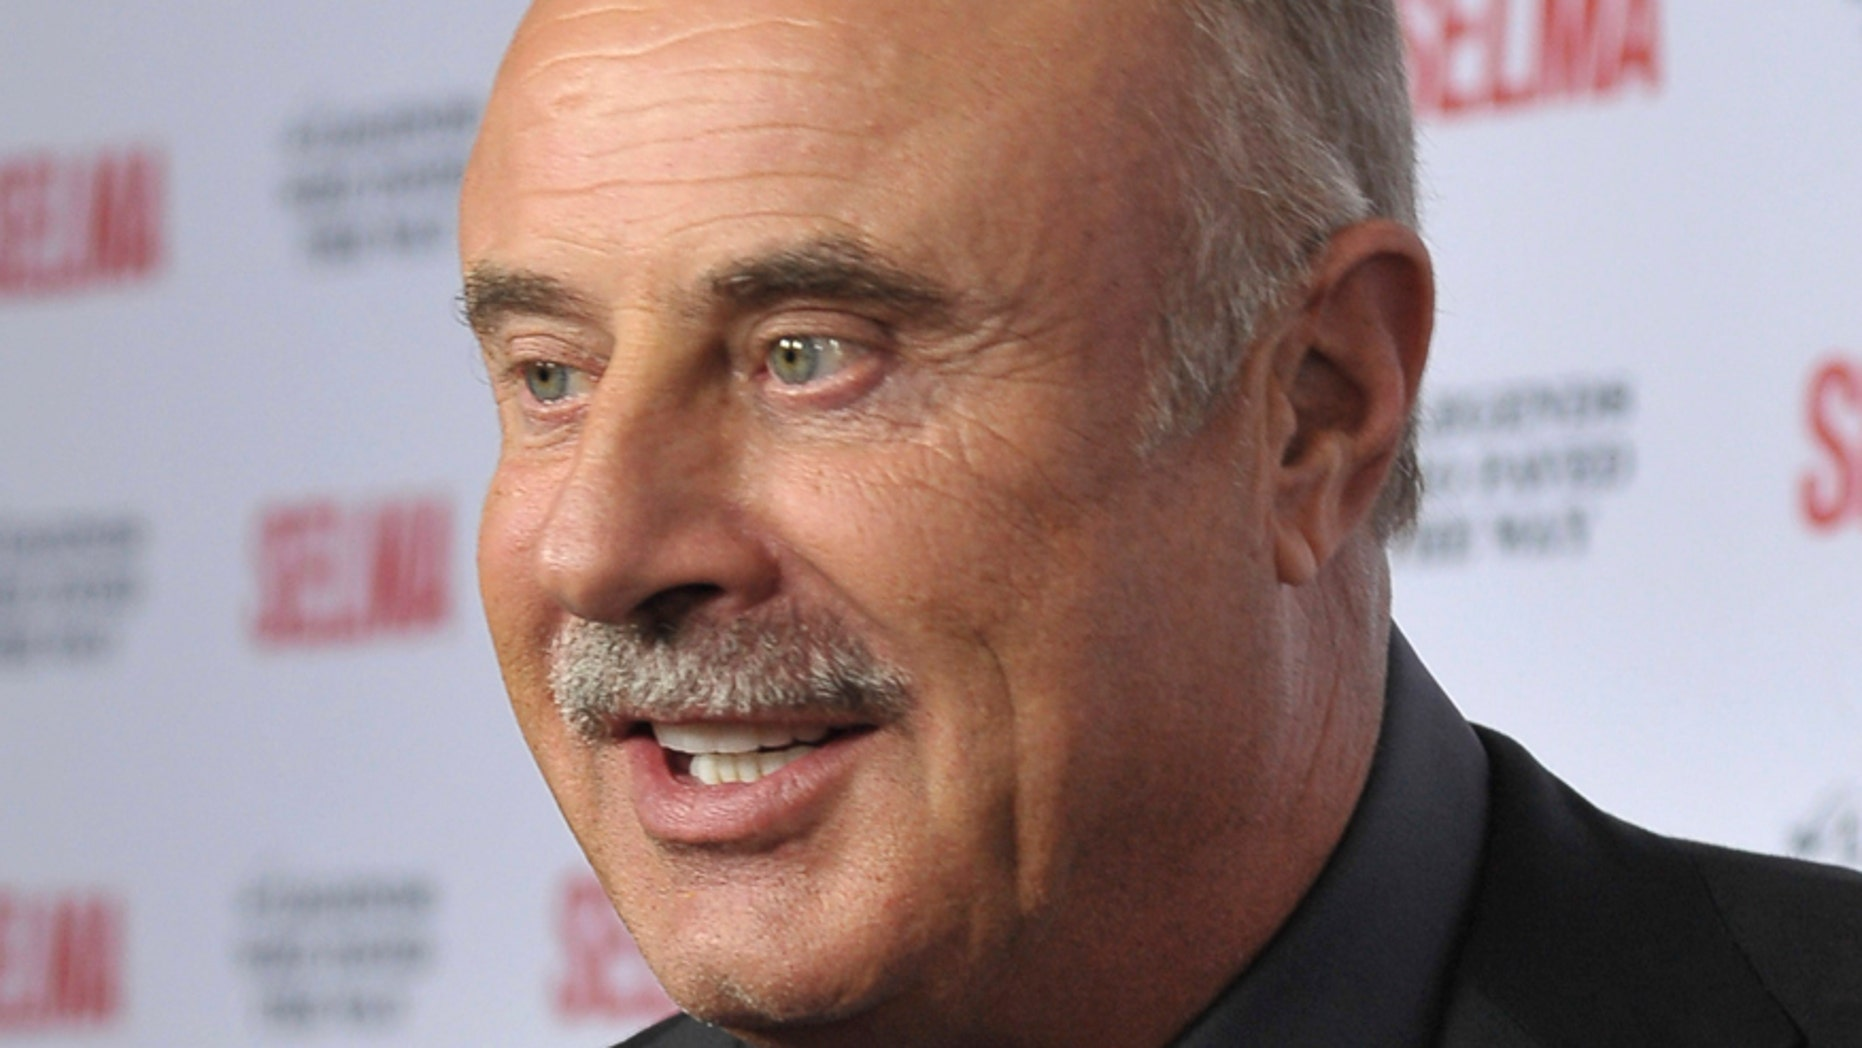 """TV personality Phil McGraw arrives during a gala event for the film """"Selma"""" in Goleta, California December 6, 2014."""